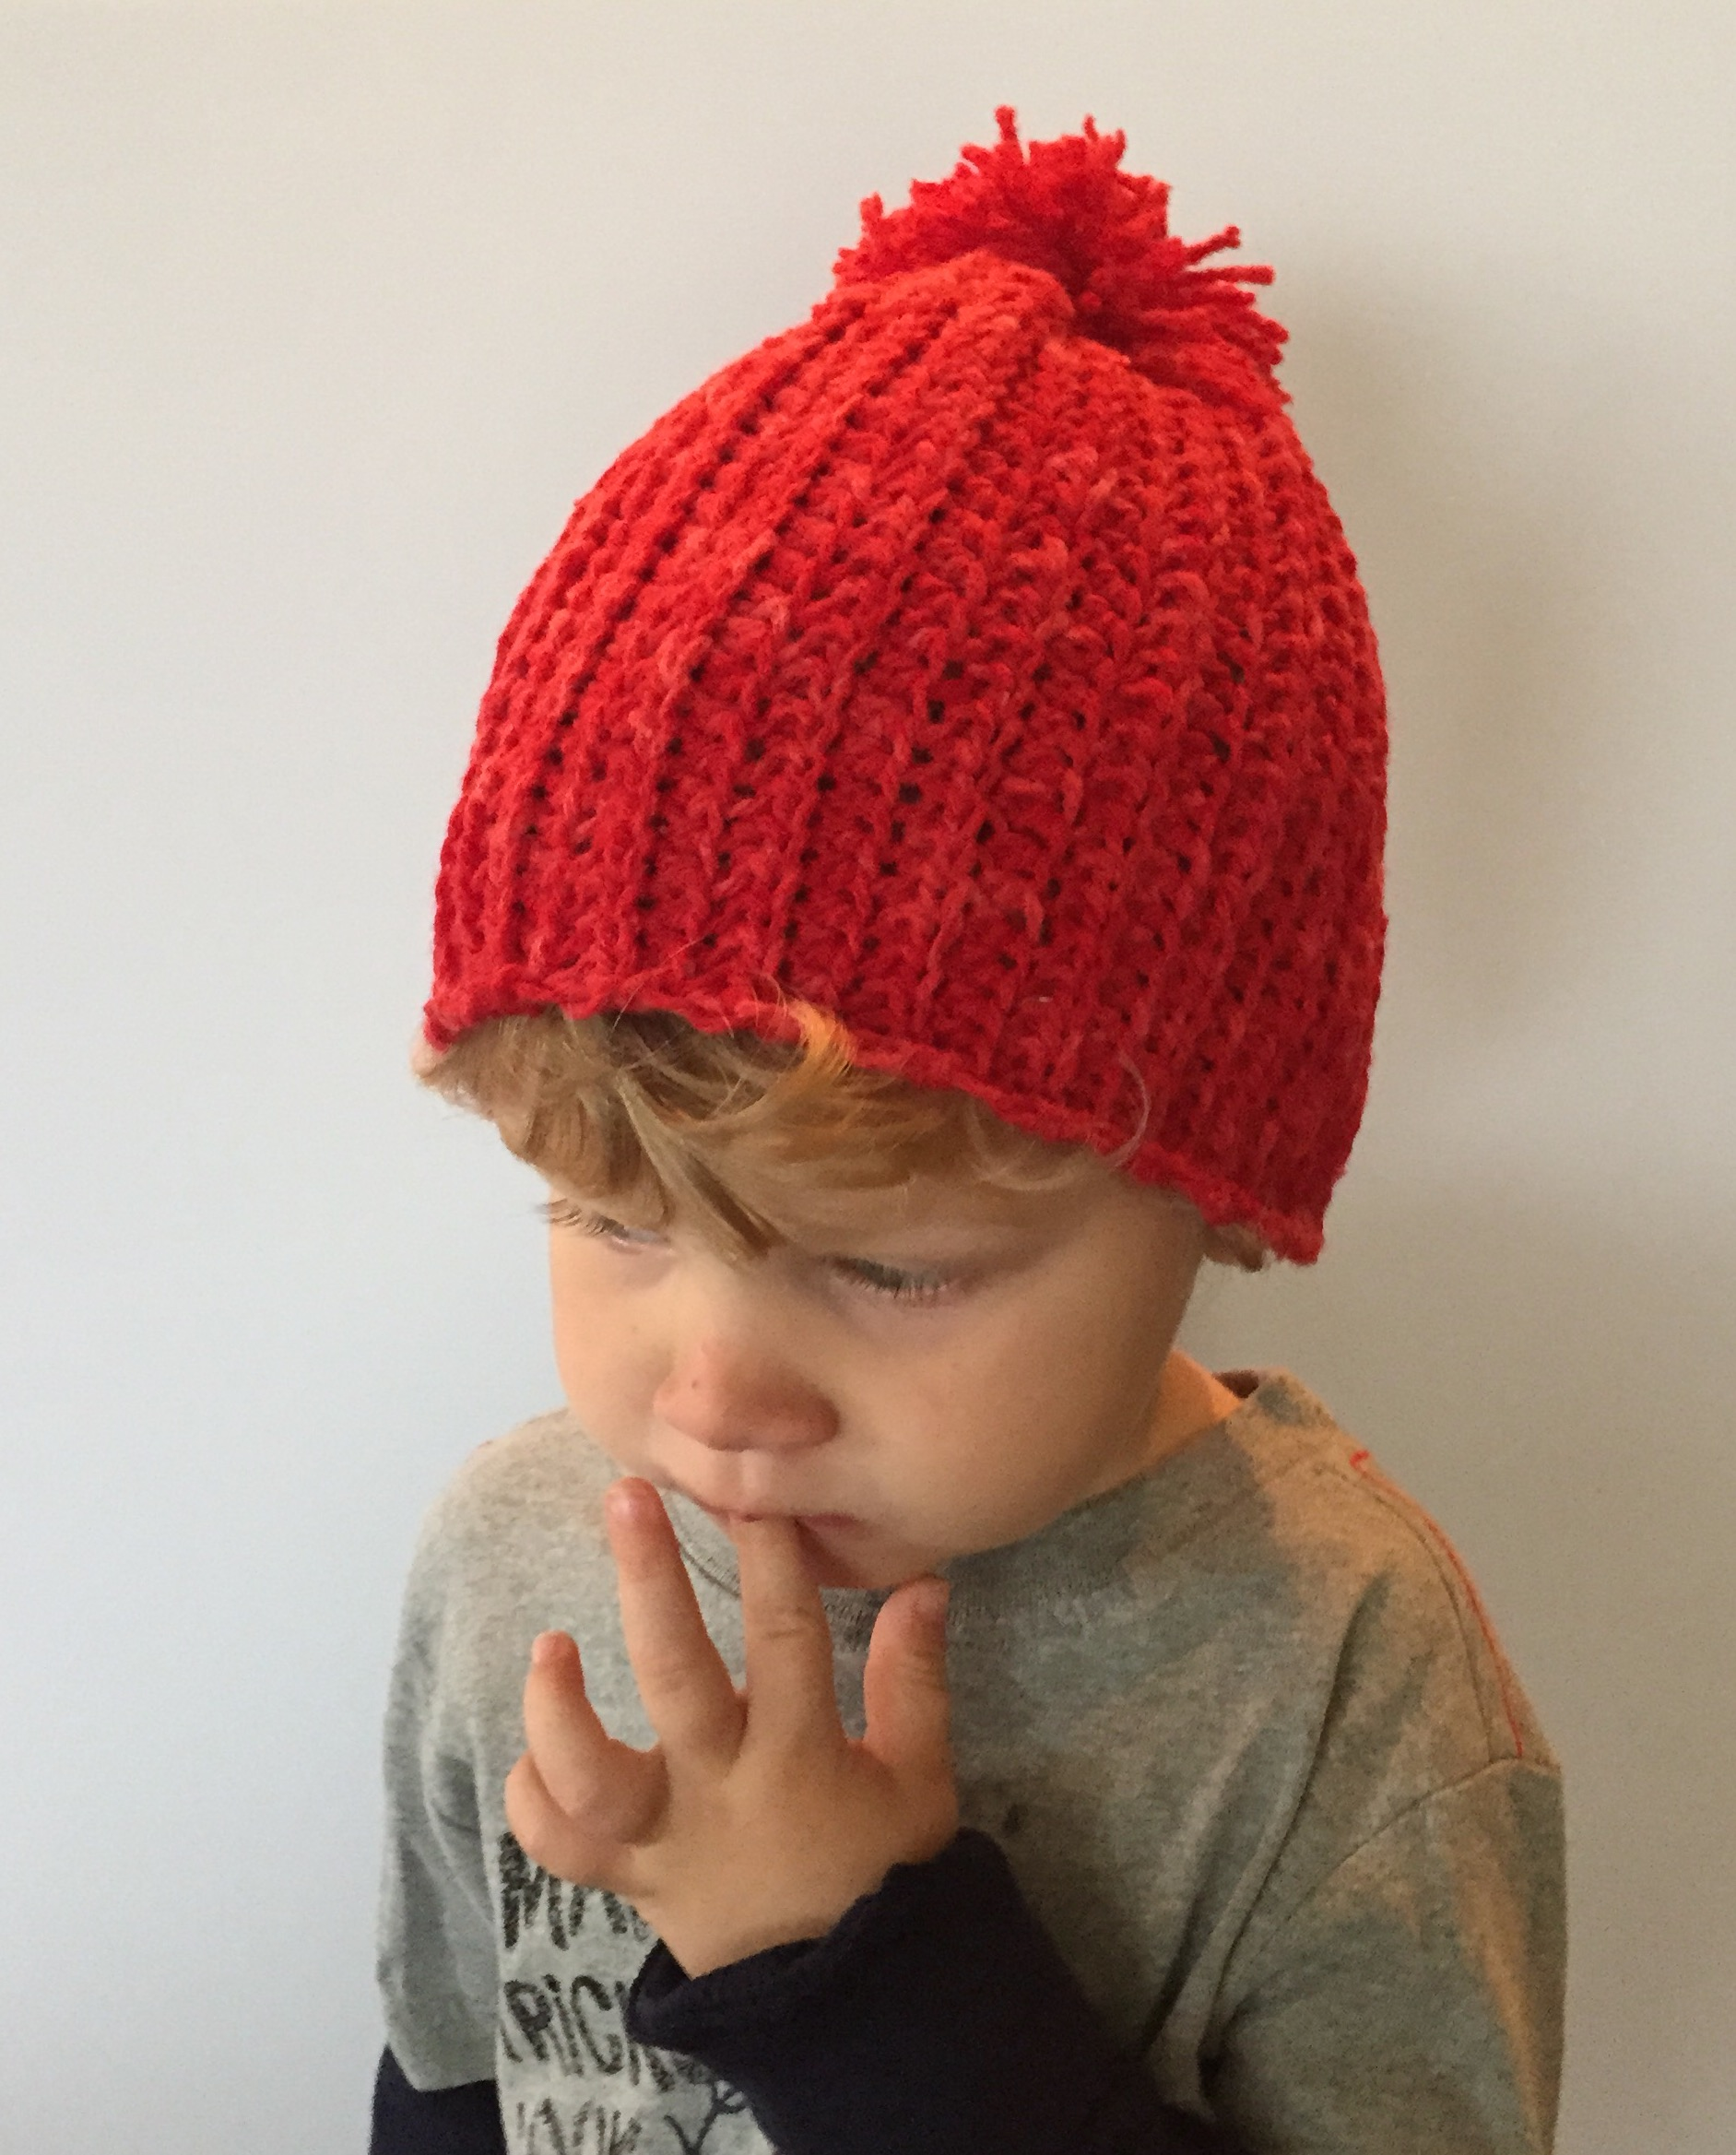 Crochet Pattern Cade S Ribbed Hat With Pom Pom For